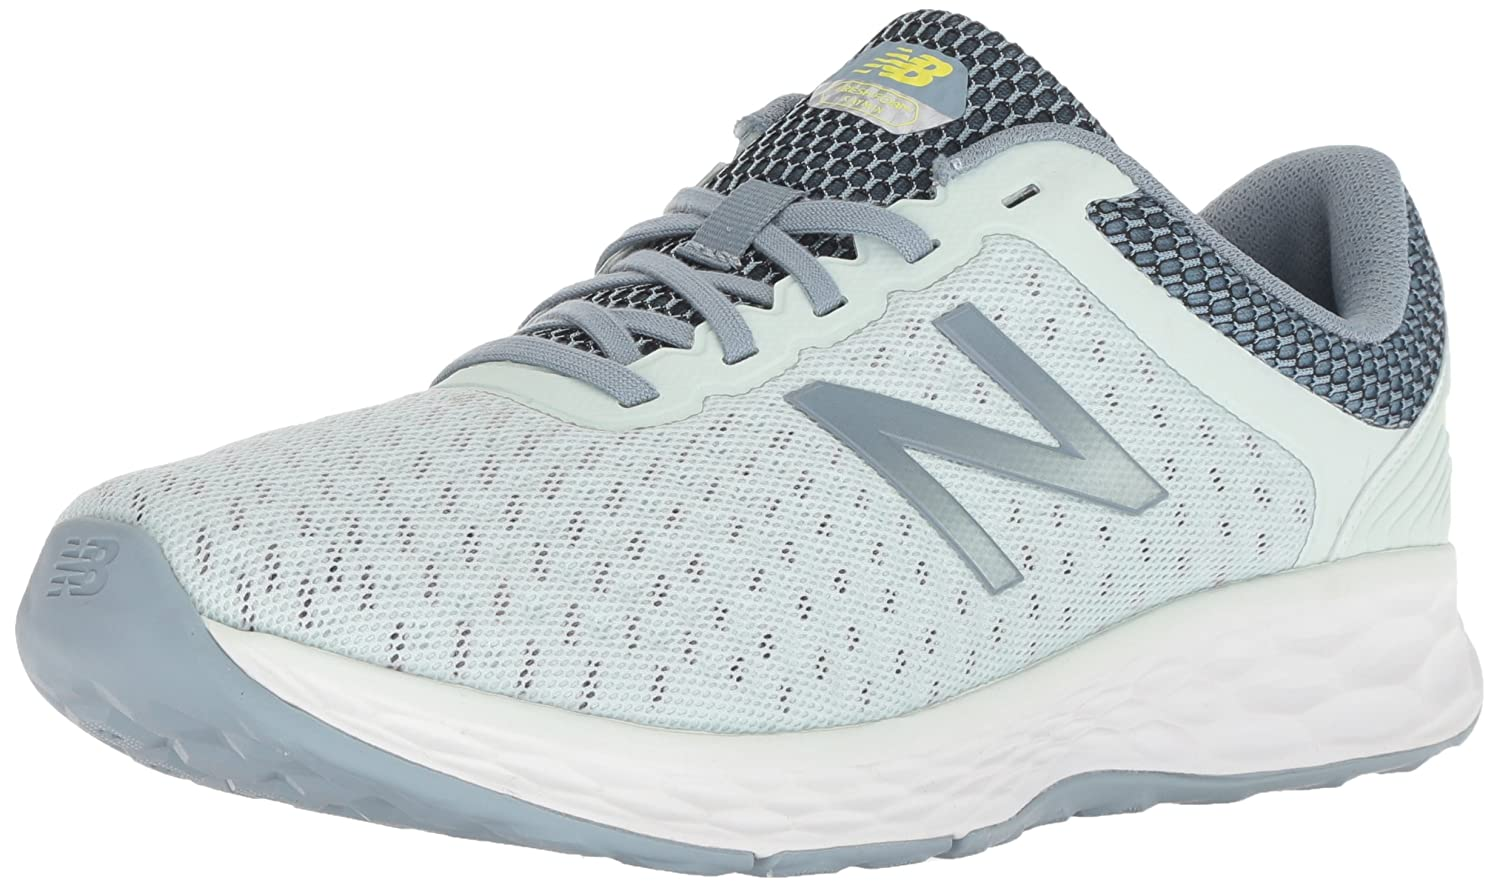 New Balance Women's Kaymin Trail v1 Fresh Foam Trail Running Shoe B075R7N523 12 D US|Ocean Air